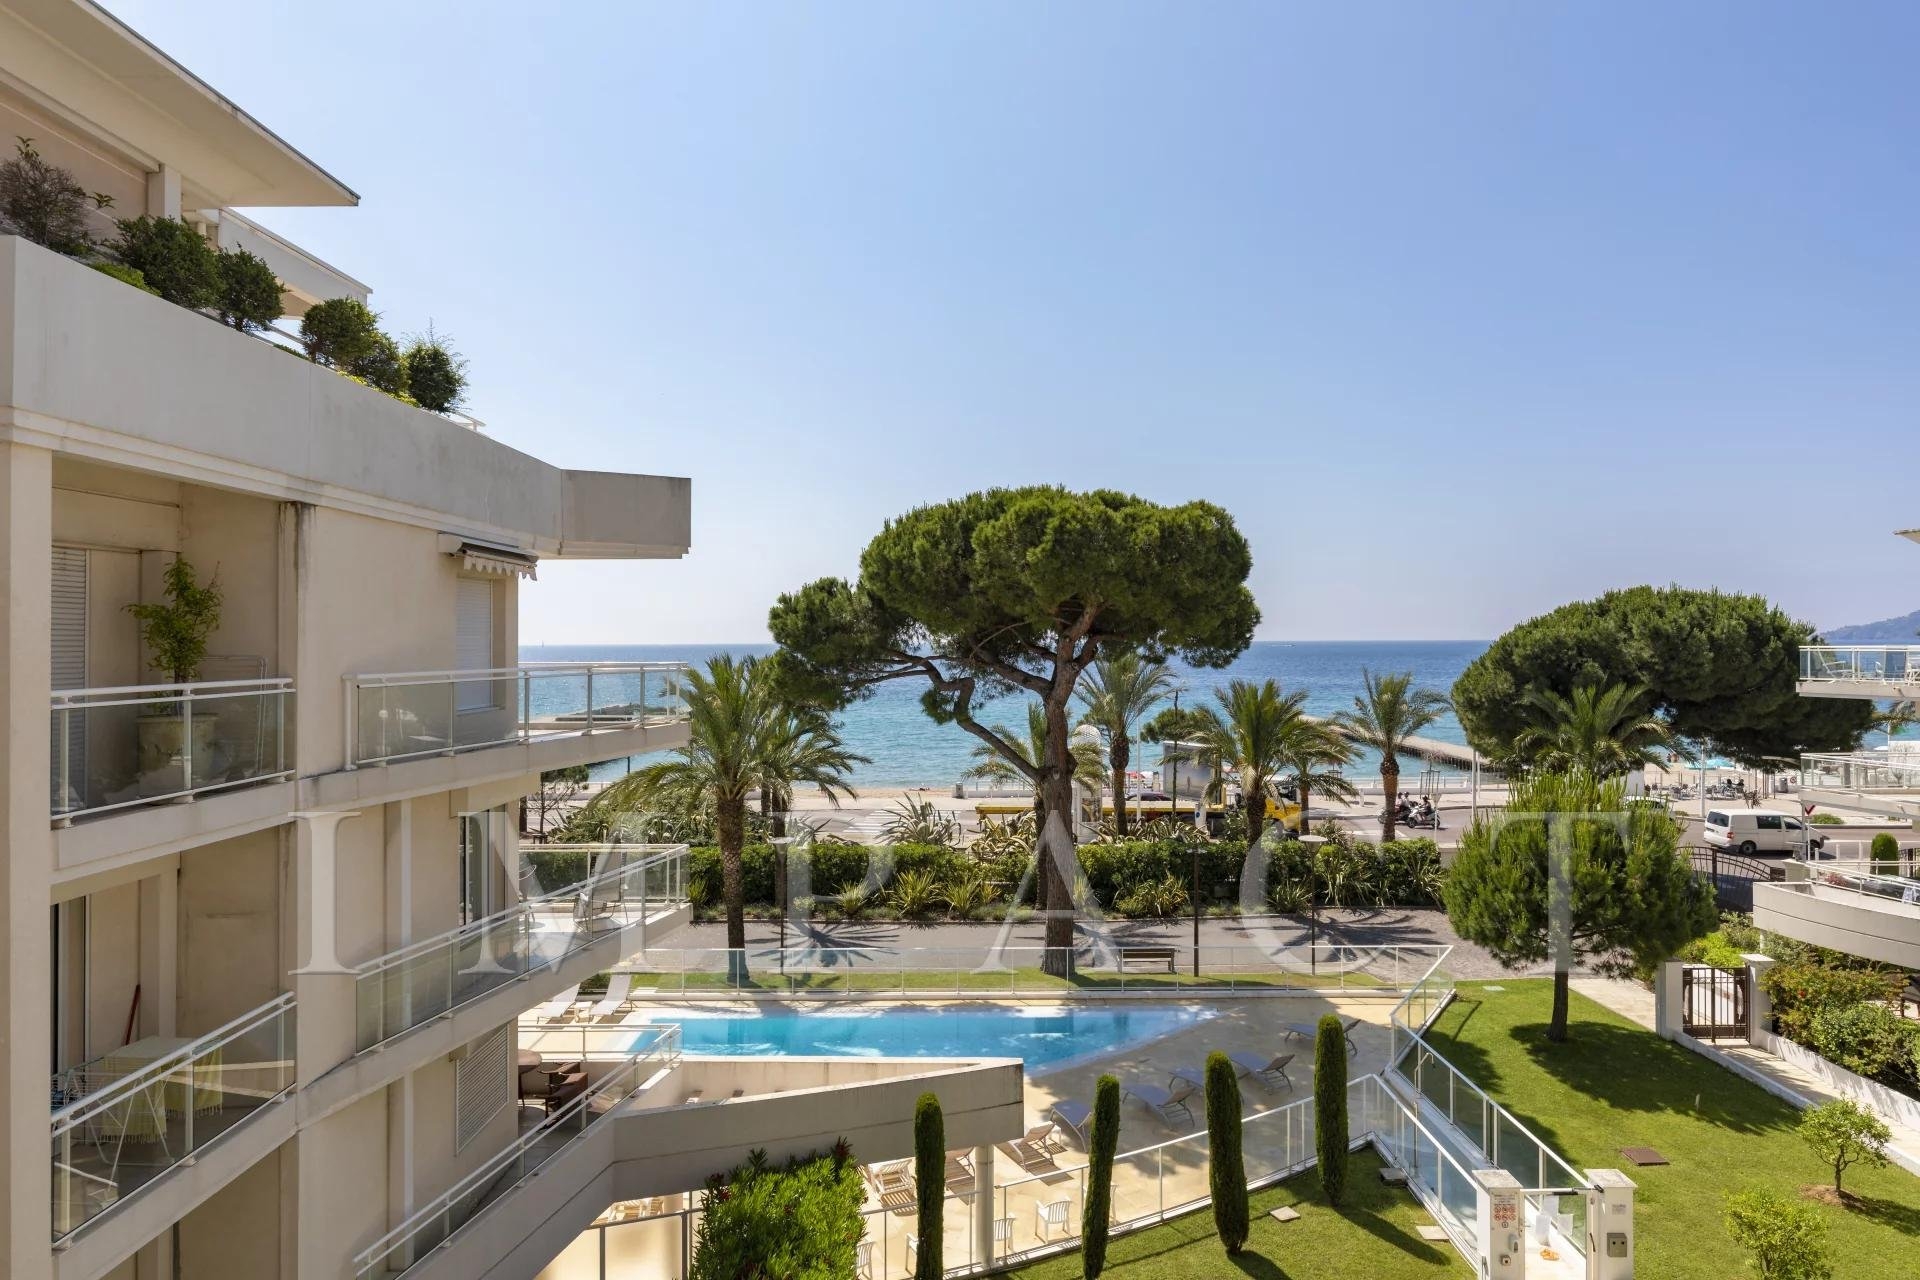 Apartment for sale with sea view - Cannes Plages du Midi